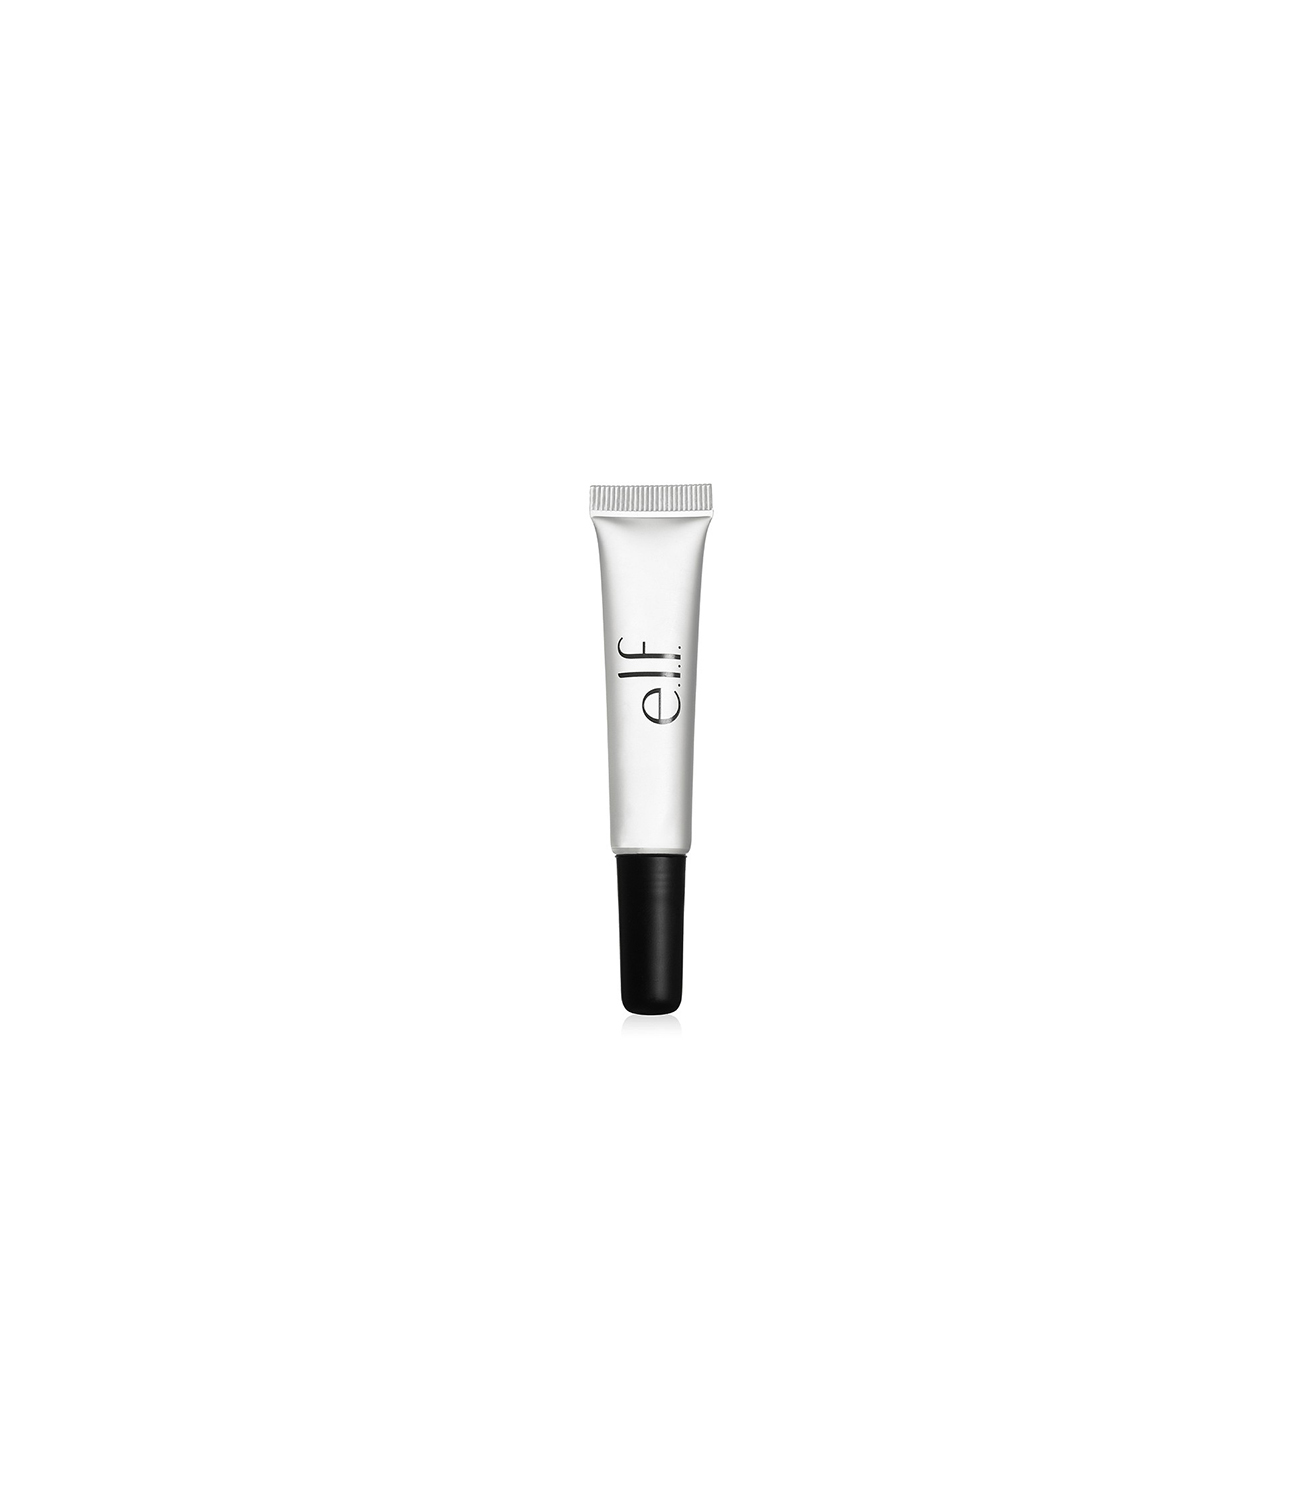 e.l.f. Studio Kiss It Goodbye Lip Color Remover